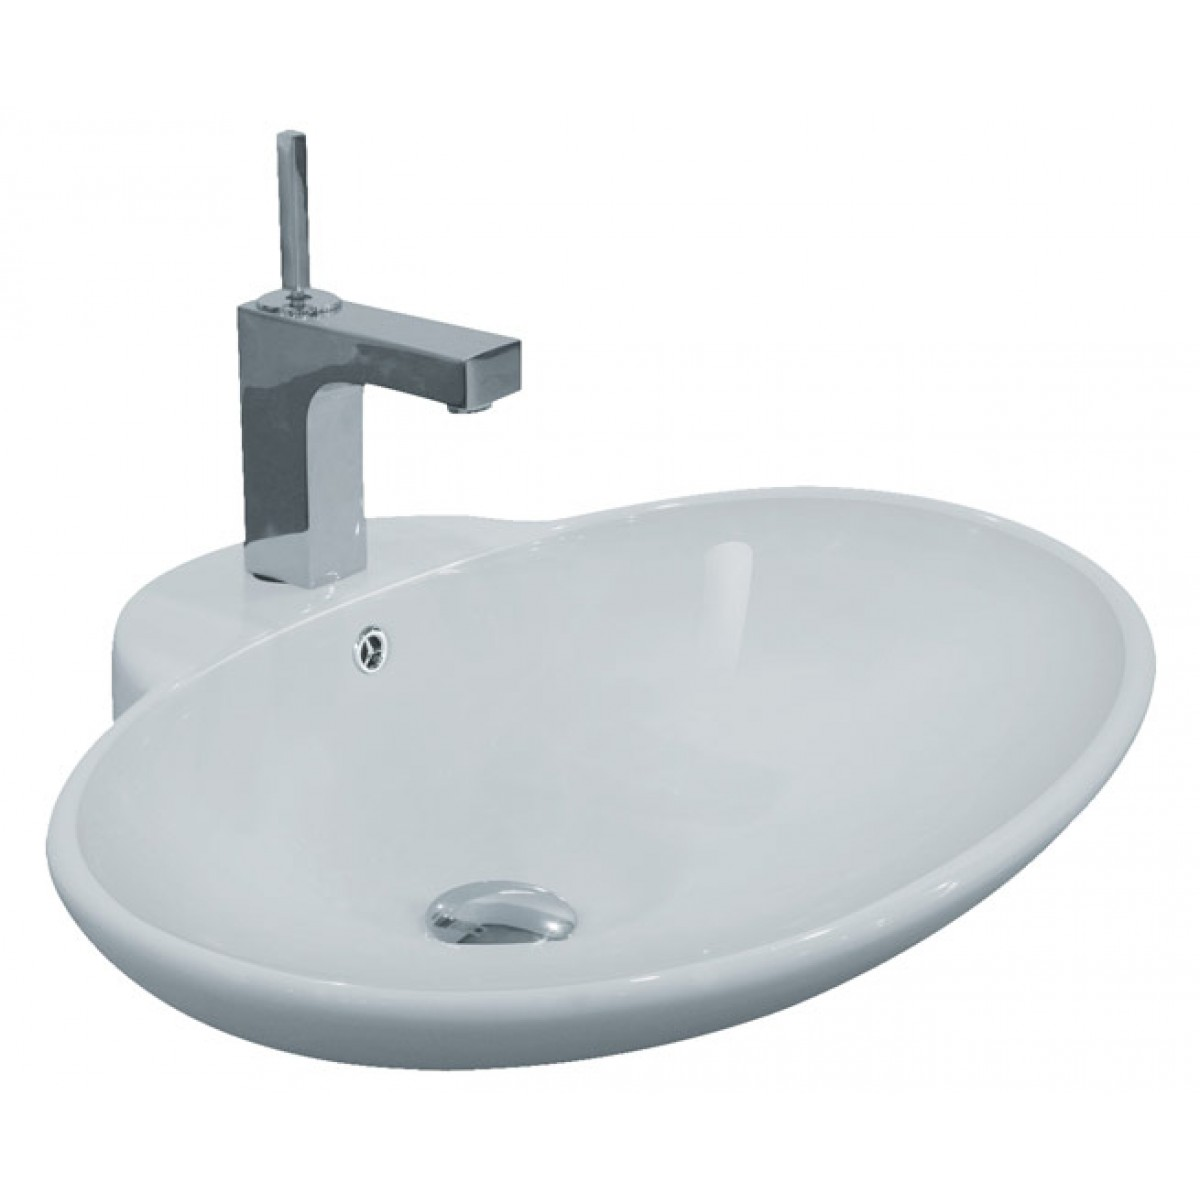 Porcelain Ceramic Single Hole Countertop Bathroom Vessel Sink   24 3 4 x  19 1 4 x 8 Inch. Porcelain Ceramic Single Hole Countertop Bathroom Vessel Sink   24